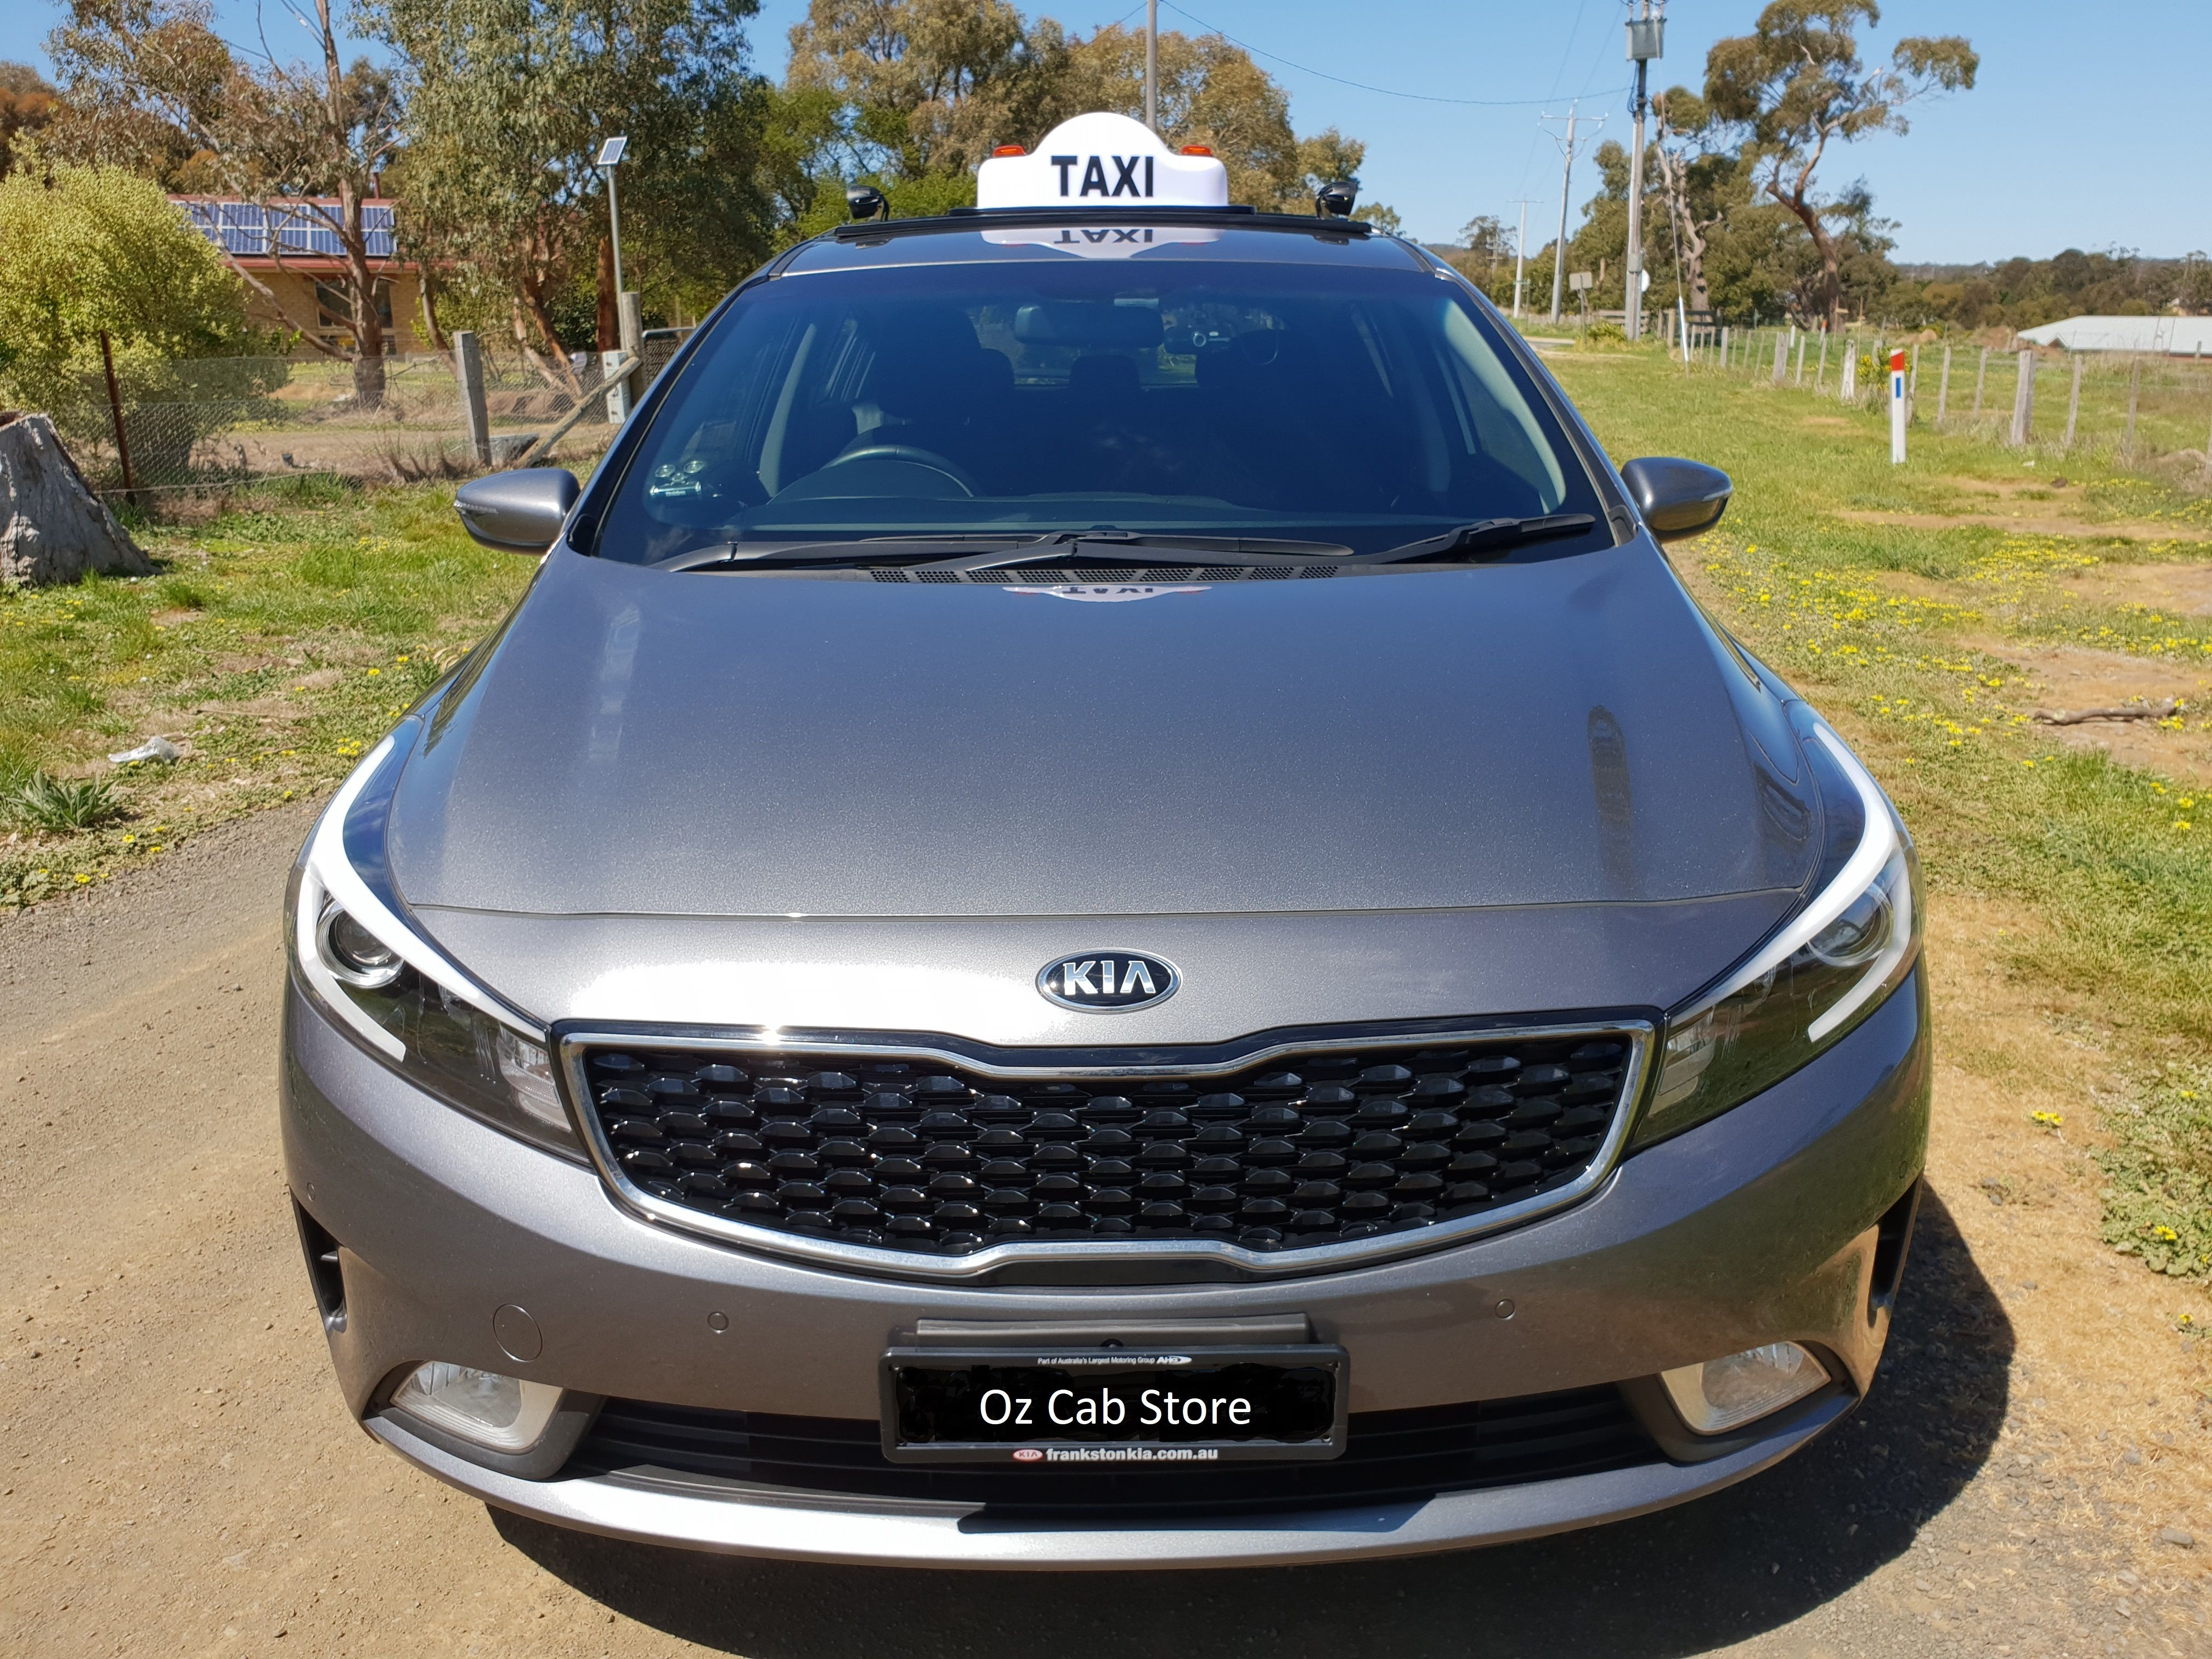 Martin Taxi Roof Rack Fitted To 2018 Kia Cerato Taxi Rideshare